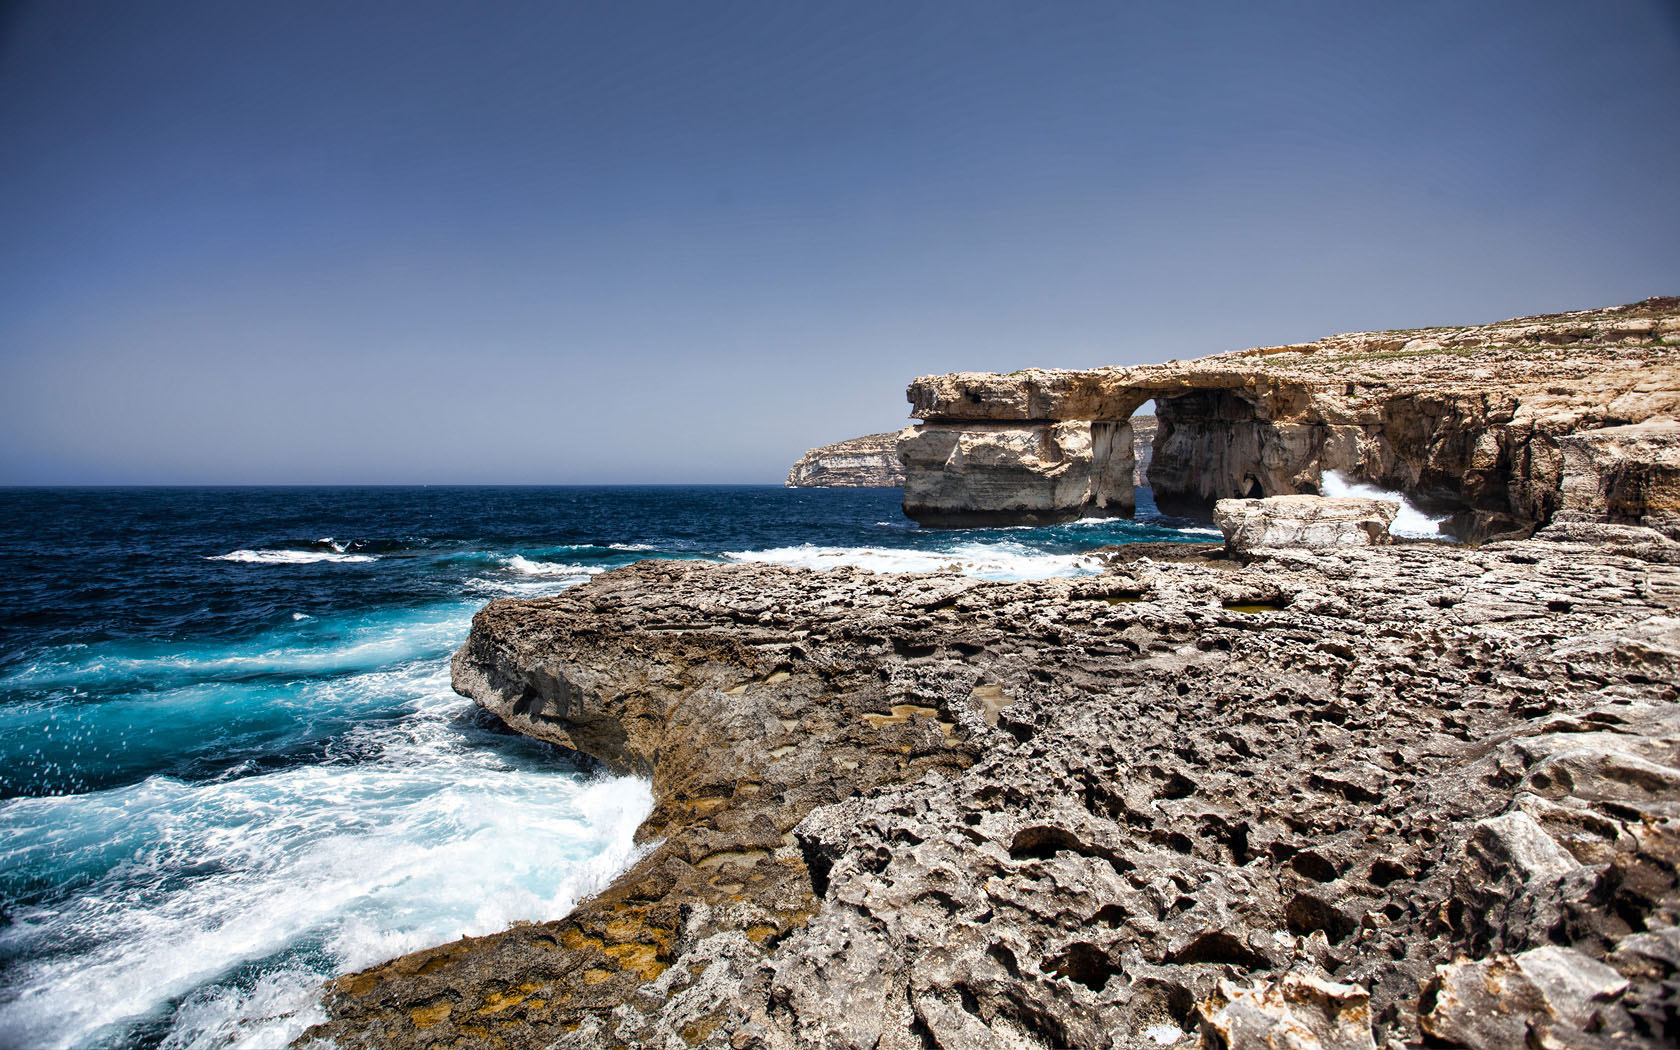 Photograph The island of Gozo by Ivo Popov on 500px